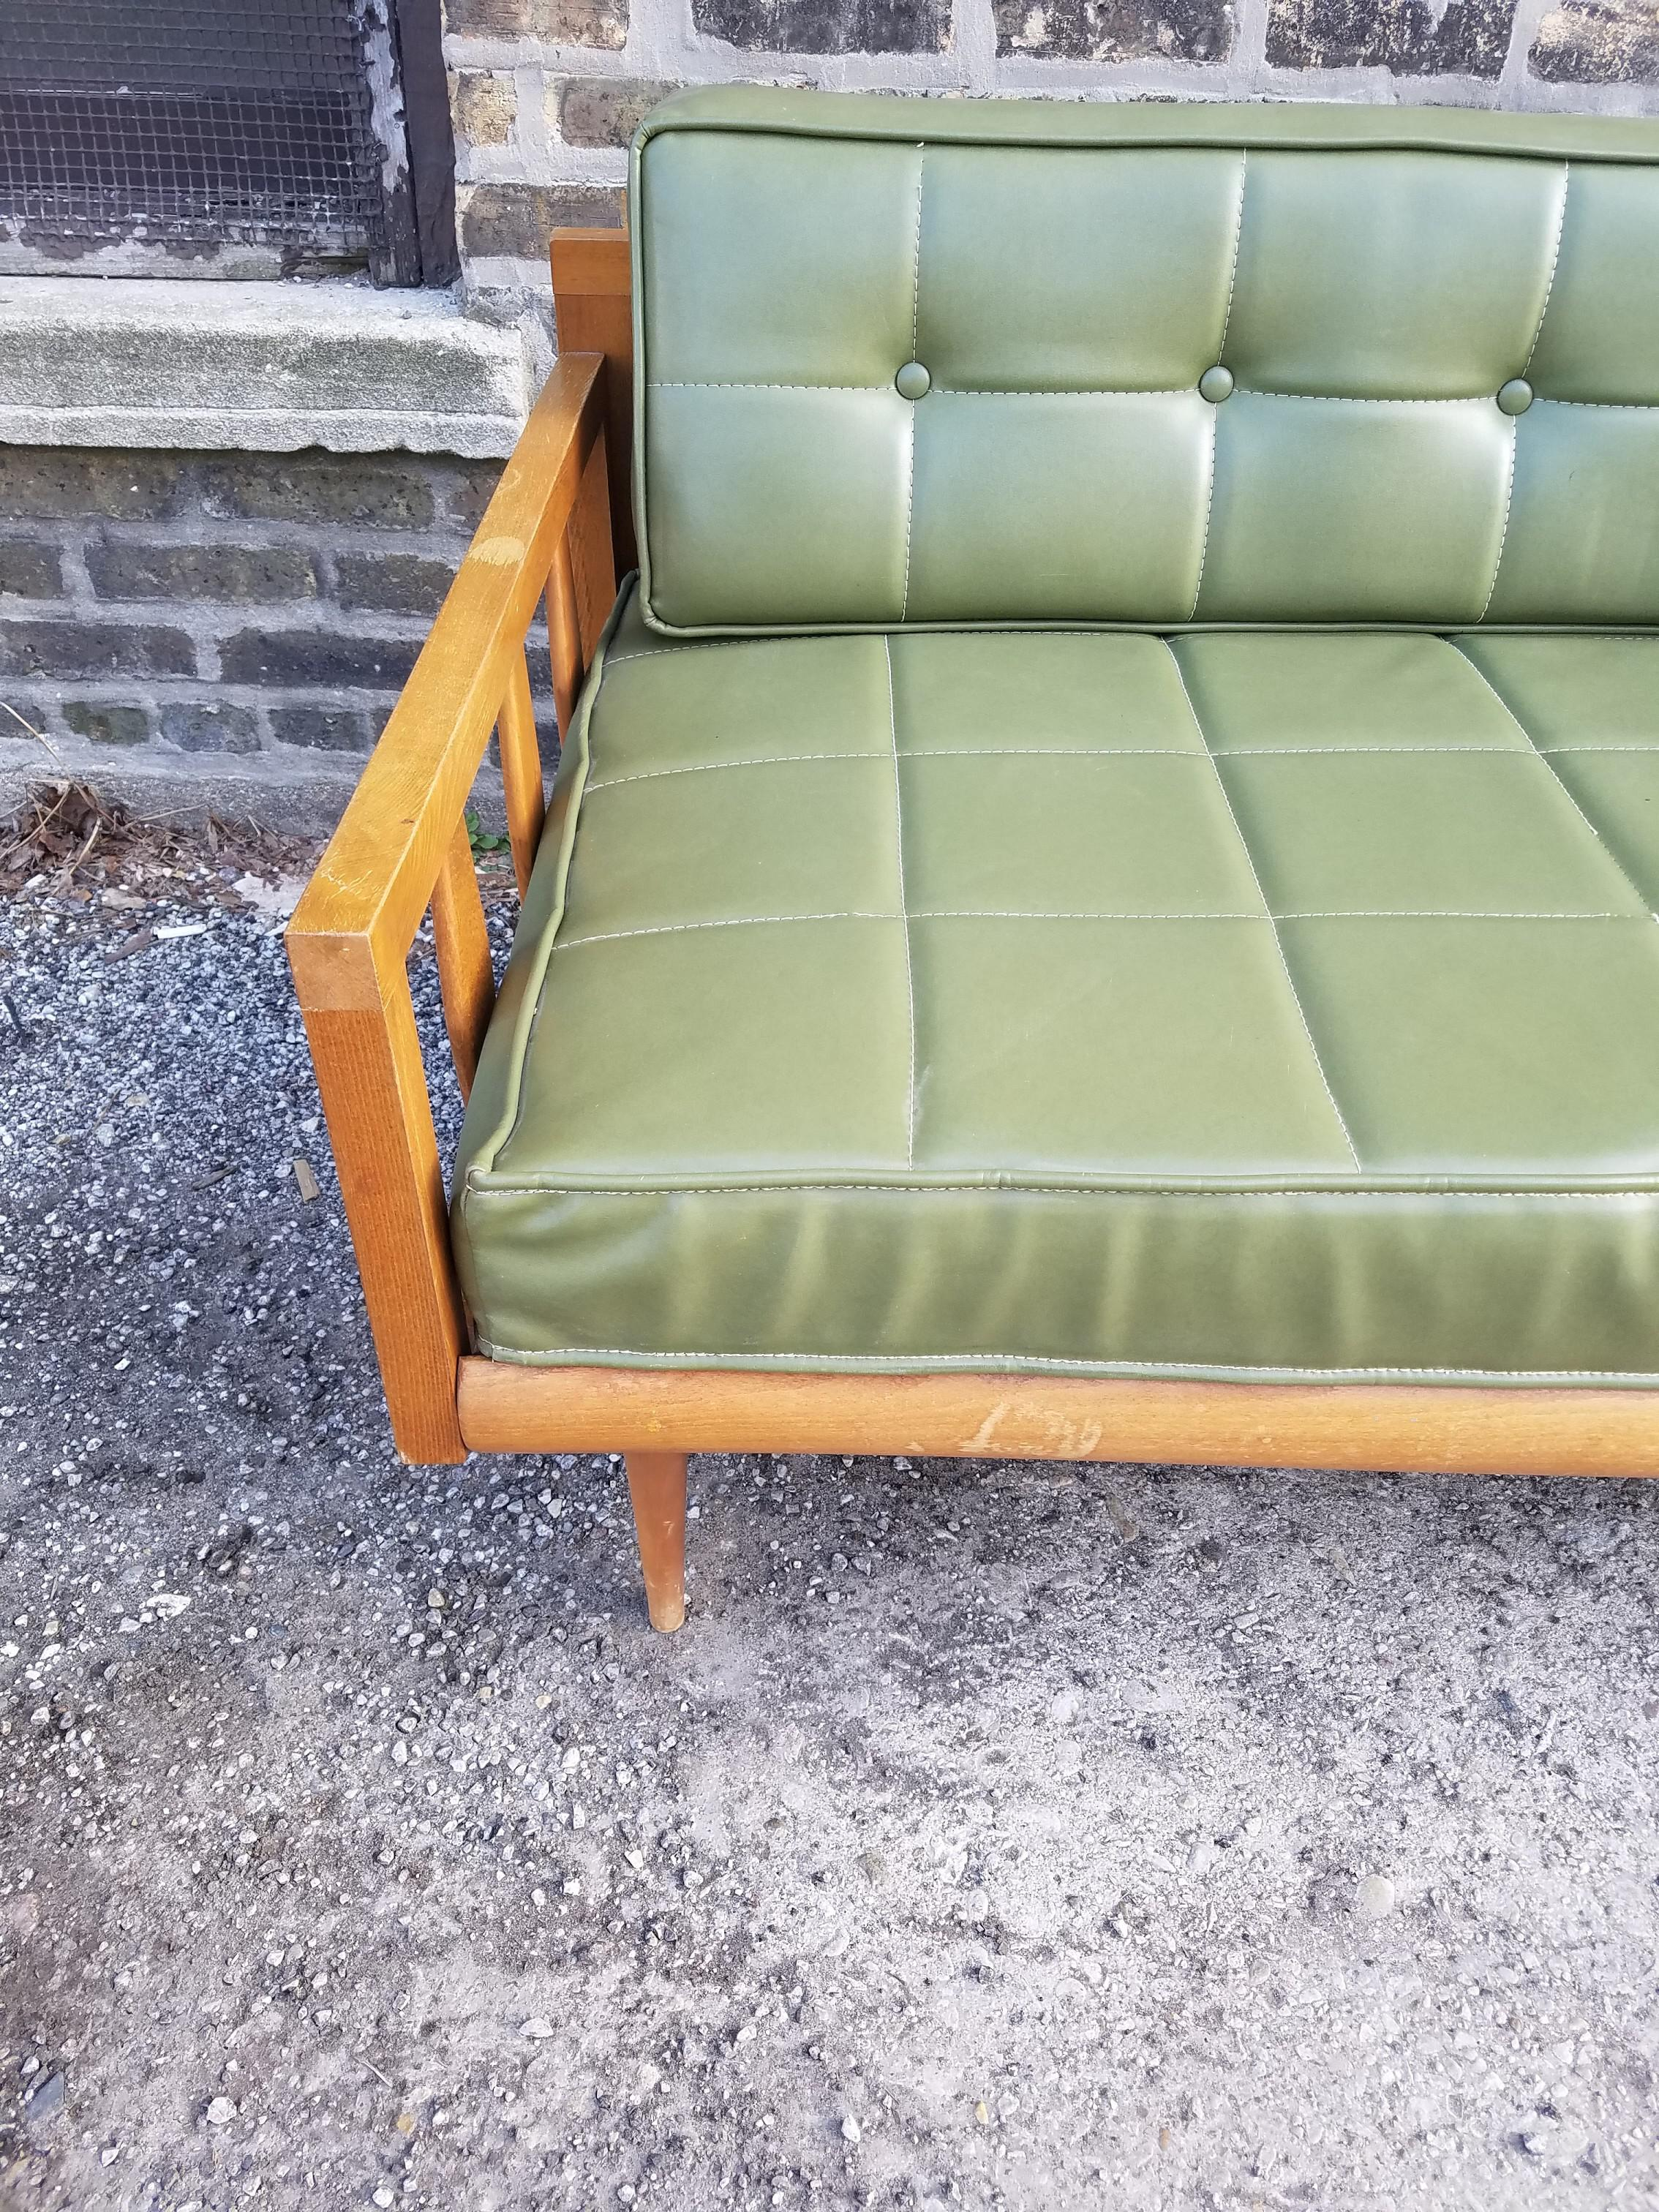 Vintage Green Vinyl Mid Century Couch / Daybed   Image 5 Of 8